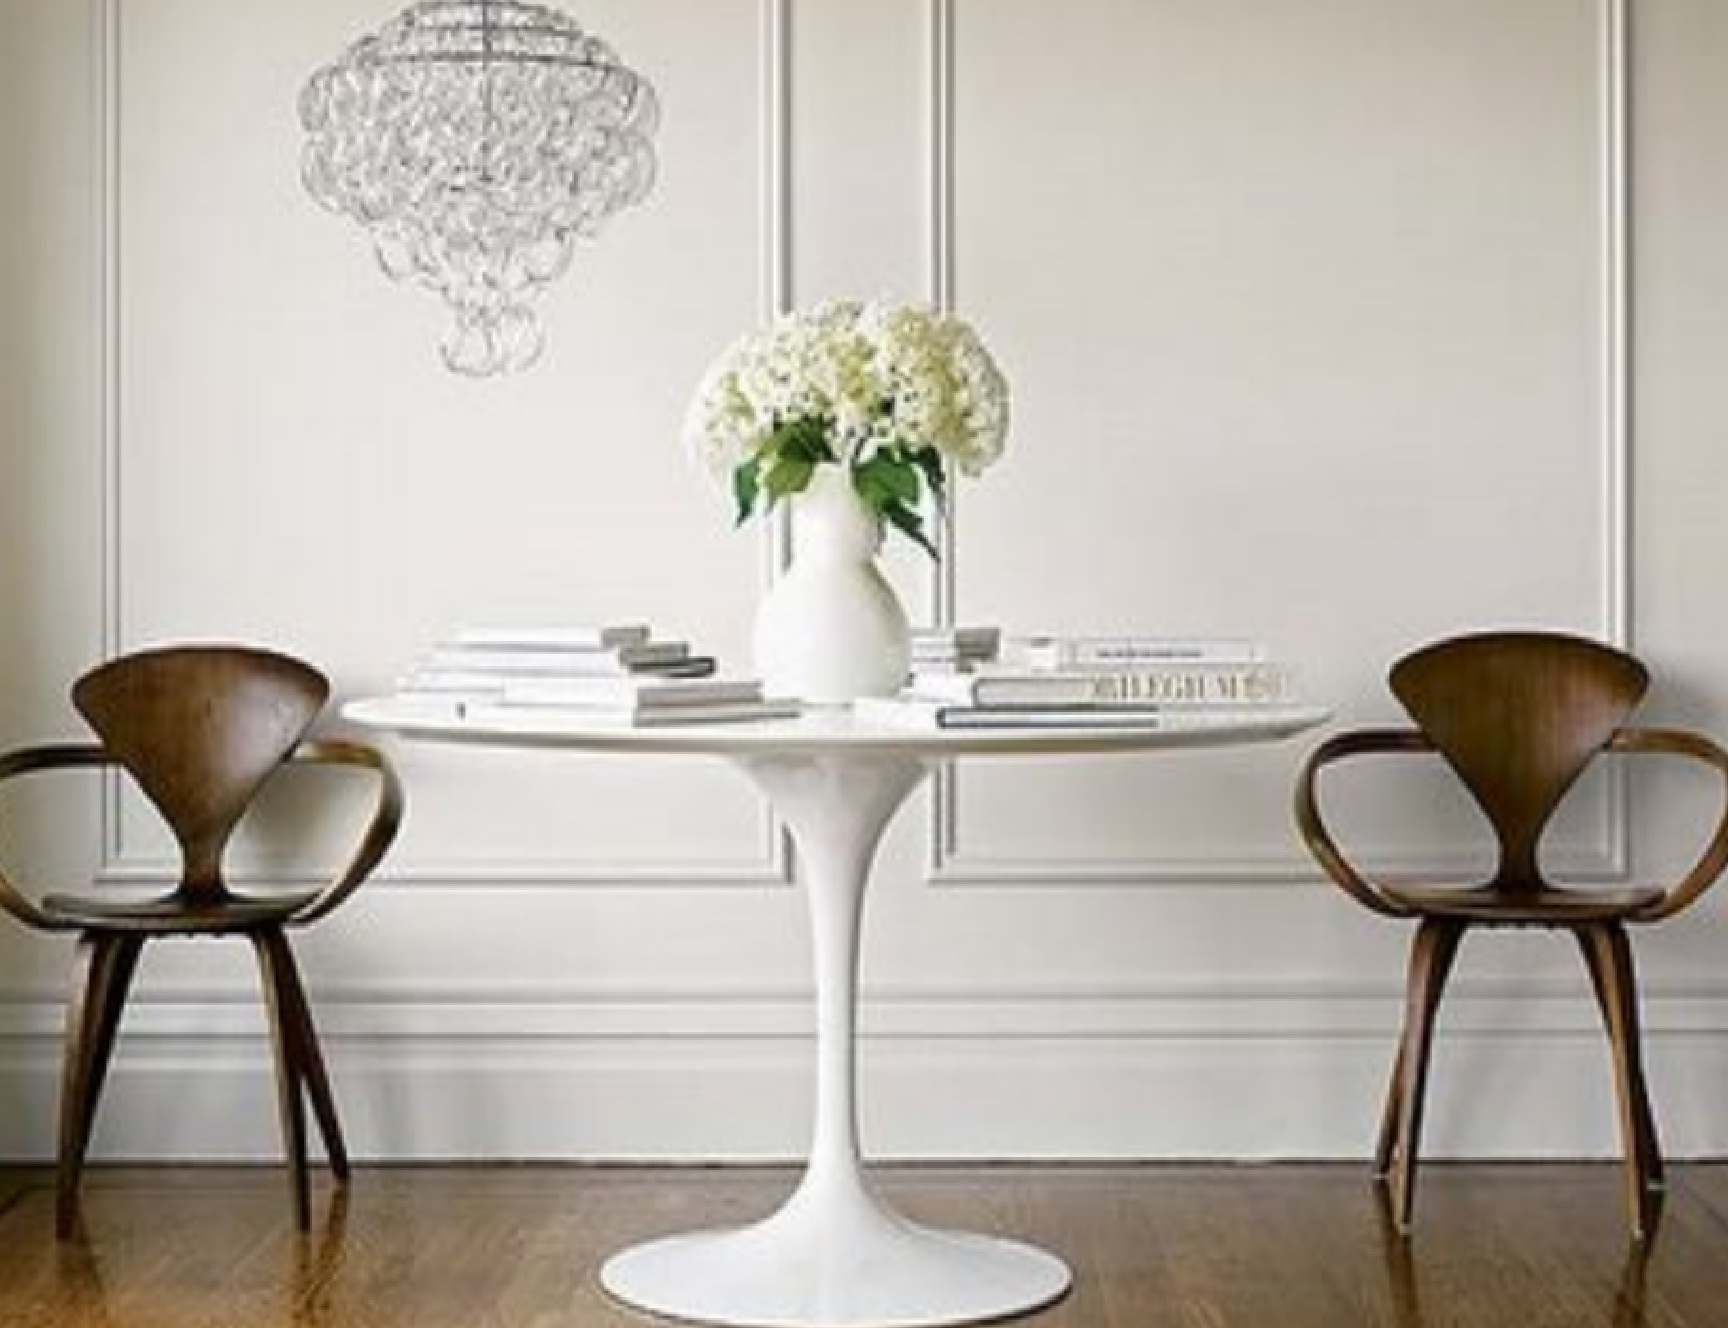 Beau Tulip White Round Table For Dining Room 1,728×1,328 Pixels